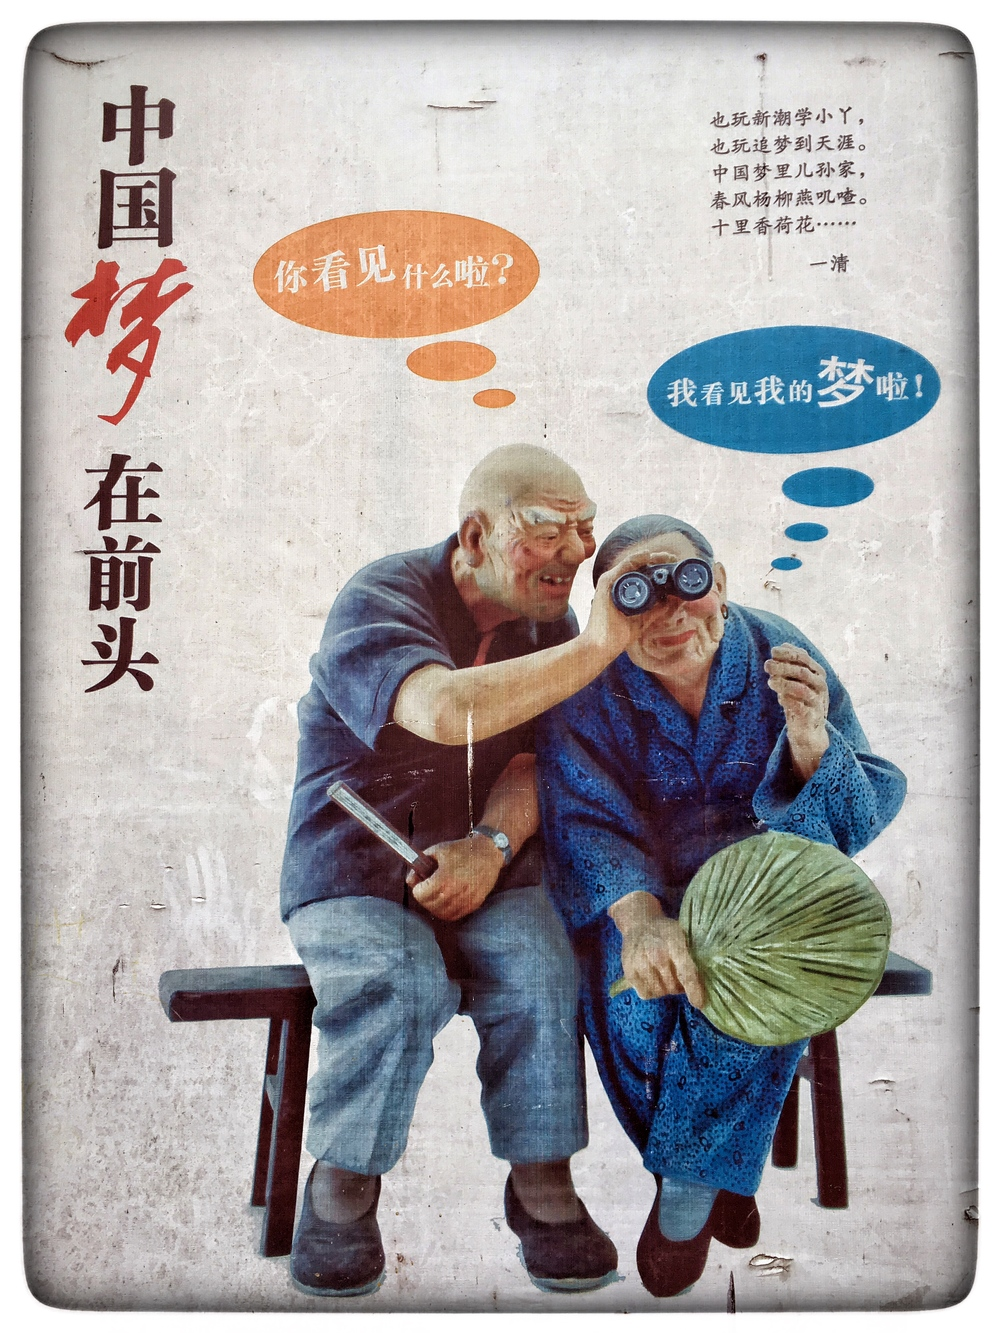 Chinese Dream poster